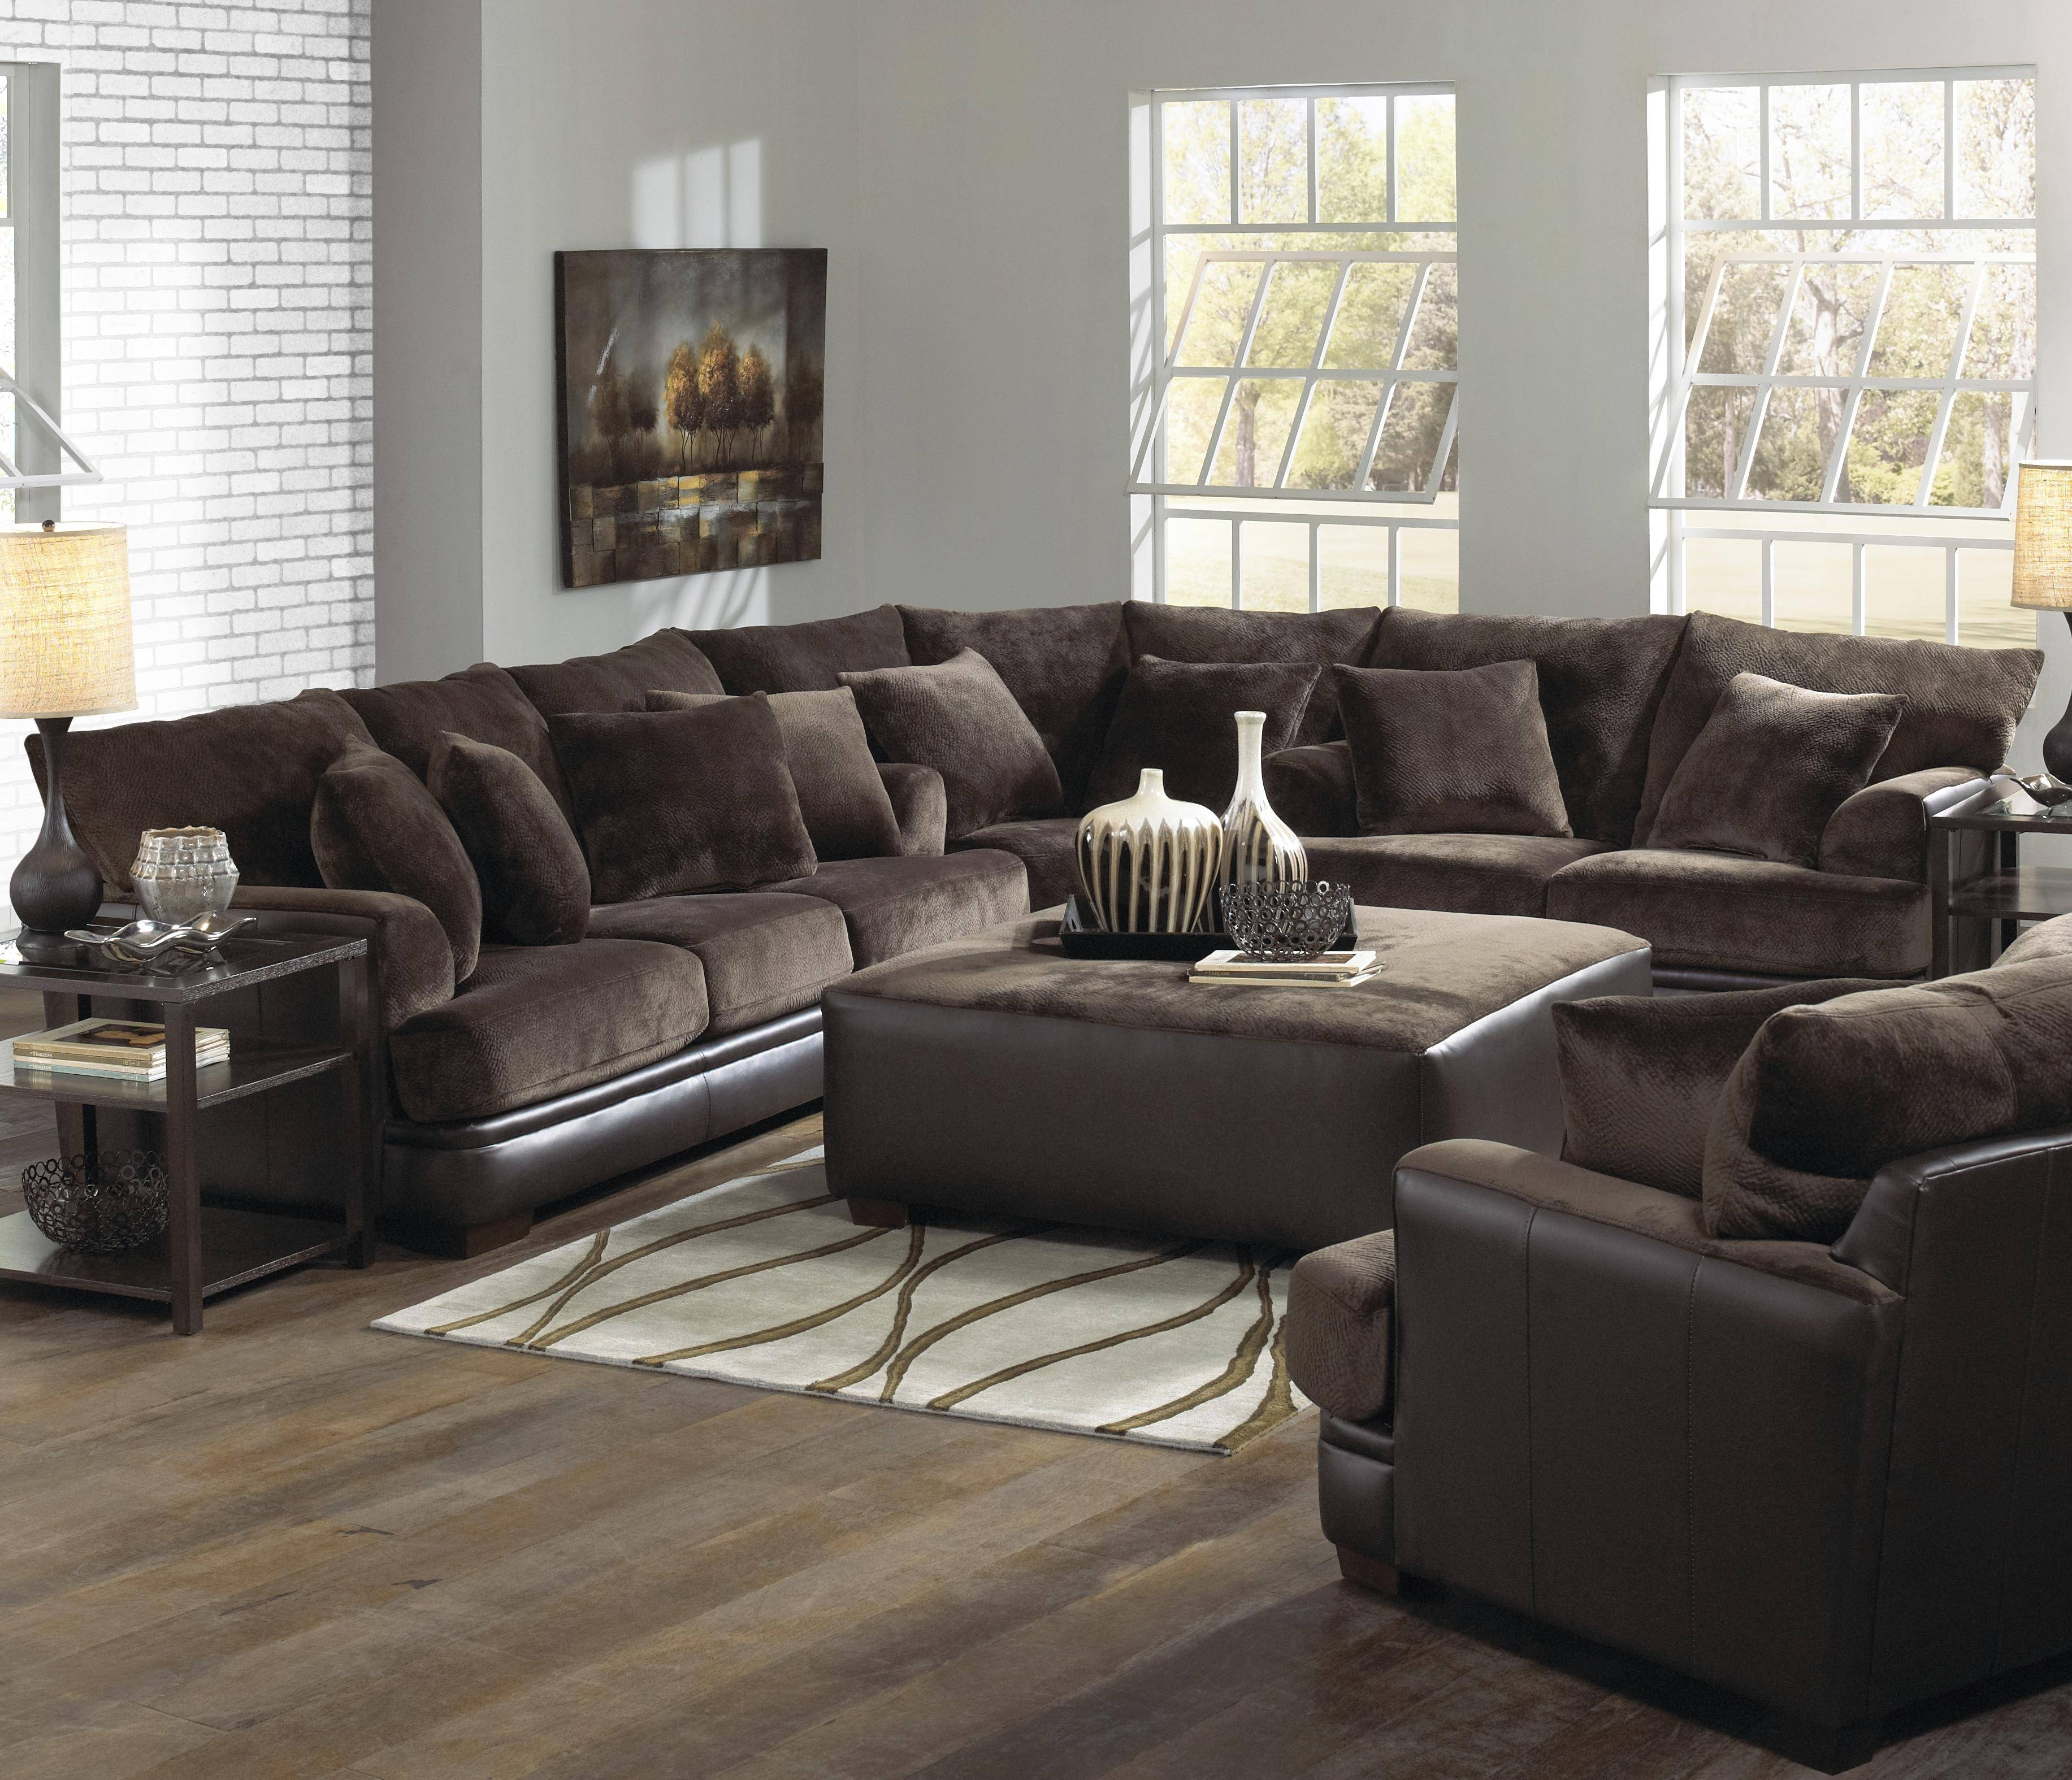 Popular C Shaped Sofa Sectional 67 For Seagrass Sectional Sofa With Seagrass Sectional Sofas (View 10 of 15)